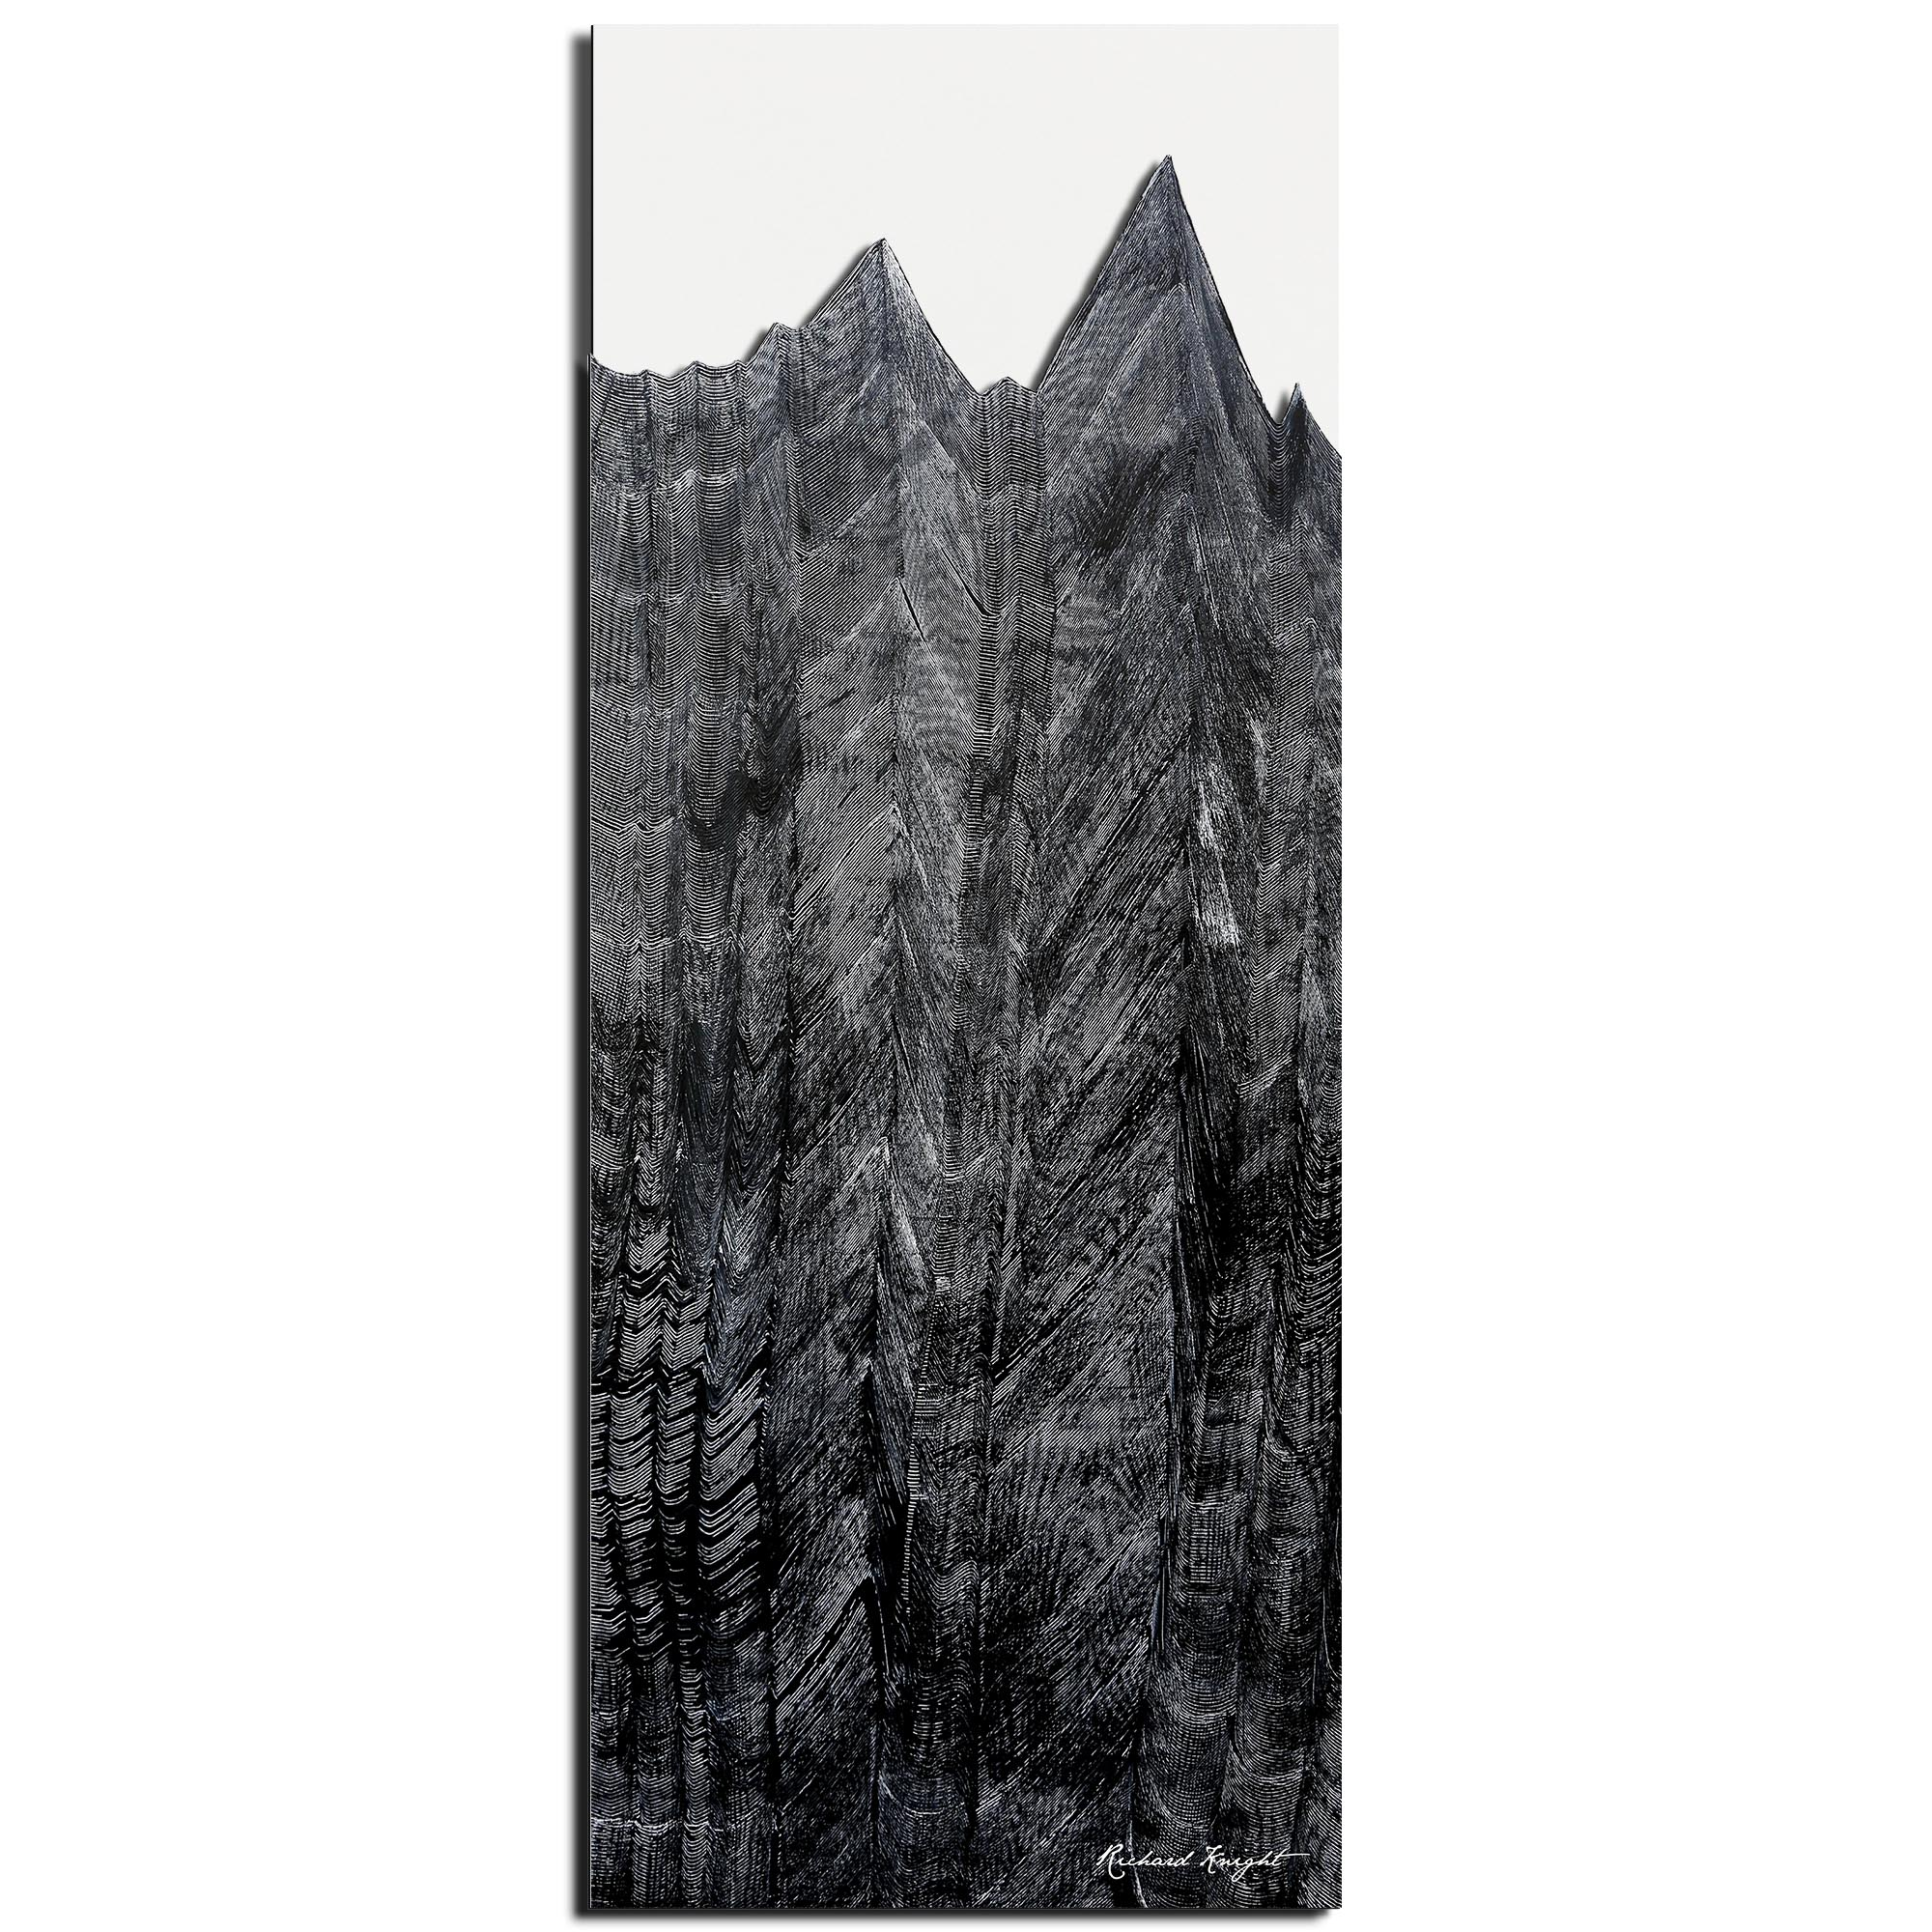 Richard Knight 'Midnight Peaks' 19in x 48in Abstract Landscape Art on Polymetal